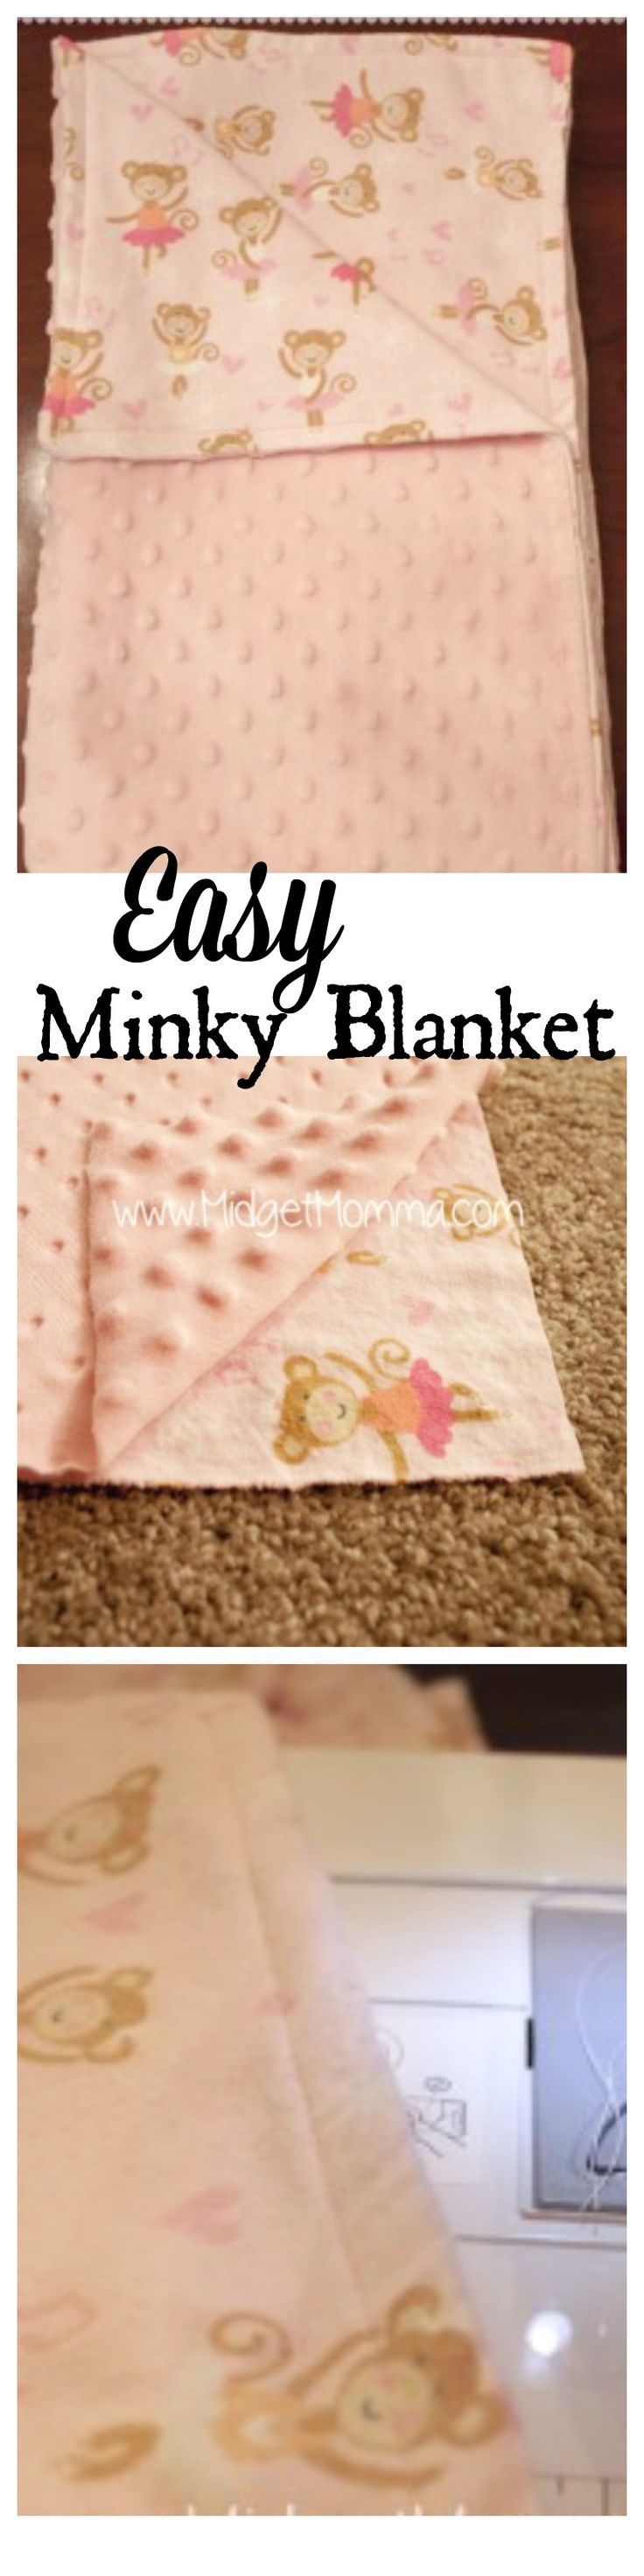 DIY Minky Blanket. Make a minky blanket yourself with any fabric you want. Easy to follow step by step DIY Minky Blanket directions to make your own blanket! Use whatever fabric colors and designs you want to make your own super soft minky blanket! Can ma